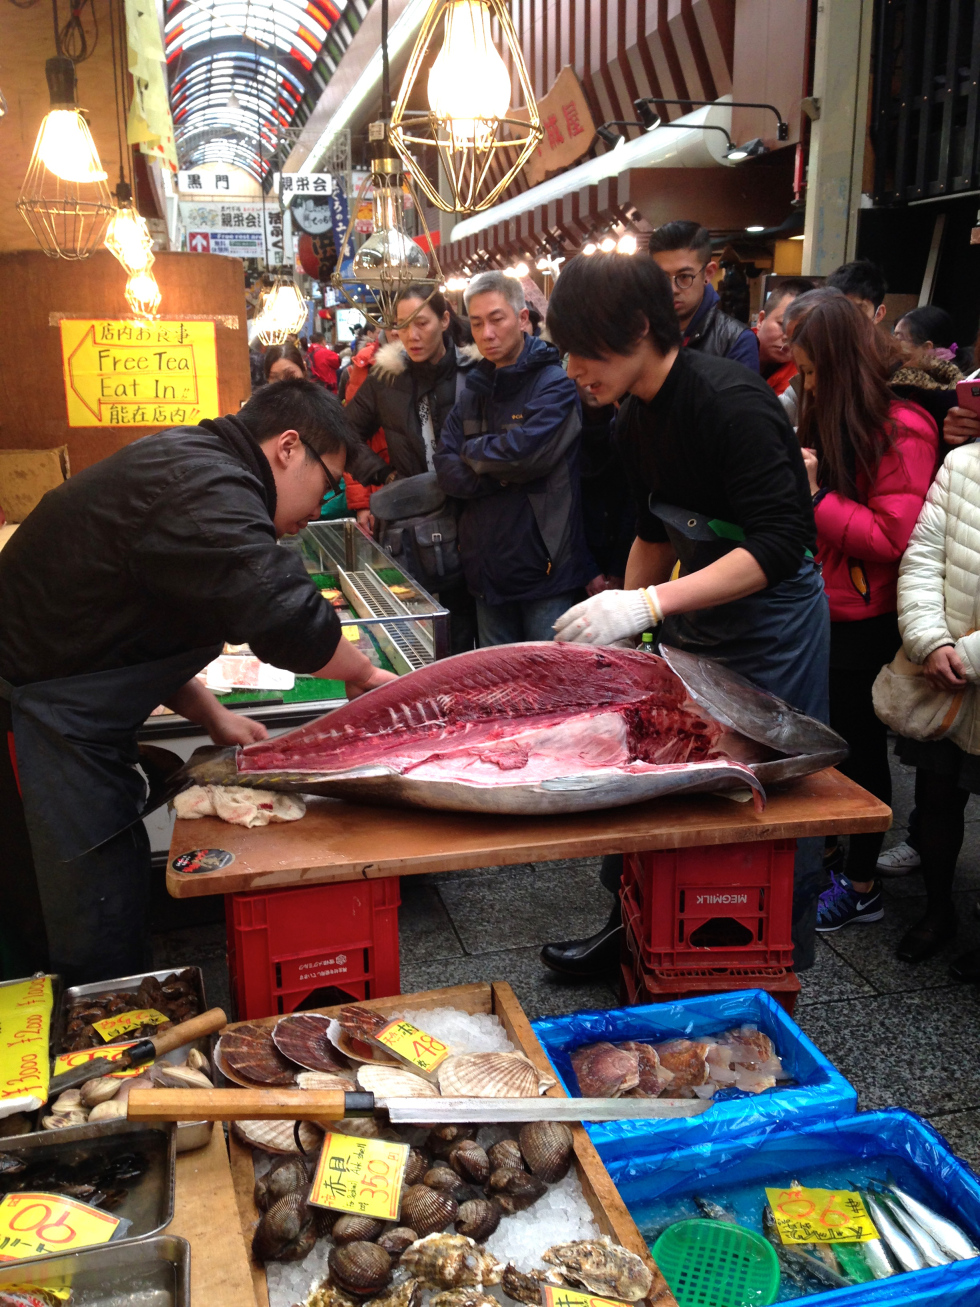 """The crowd cheered and I joined in but was abruptly halted in my applause when the fish monger turned to me and beckoned me forth. Confused and shy, I shuffled forward and mumbled my apologies- """"sumimasen""""- for the language barrier. To this I was simply handed a spoon. The man pointed to the belly of the tuna and then emulated eating motions. I will never forget the day that I got to stand surrounded by kind smiling strangers in a foreign country, and personally scrape out the toro to eat raw on the spot from a freshly killed and butchered Tuna fish. The toro, or fattiest and very expensive area of the tuna, immediately melted in my mouth. There was no need for lemon or soy sauce to balance the flavor. It was perfection."""